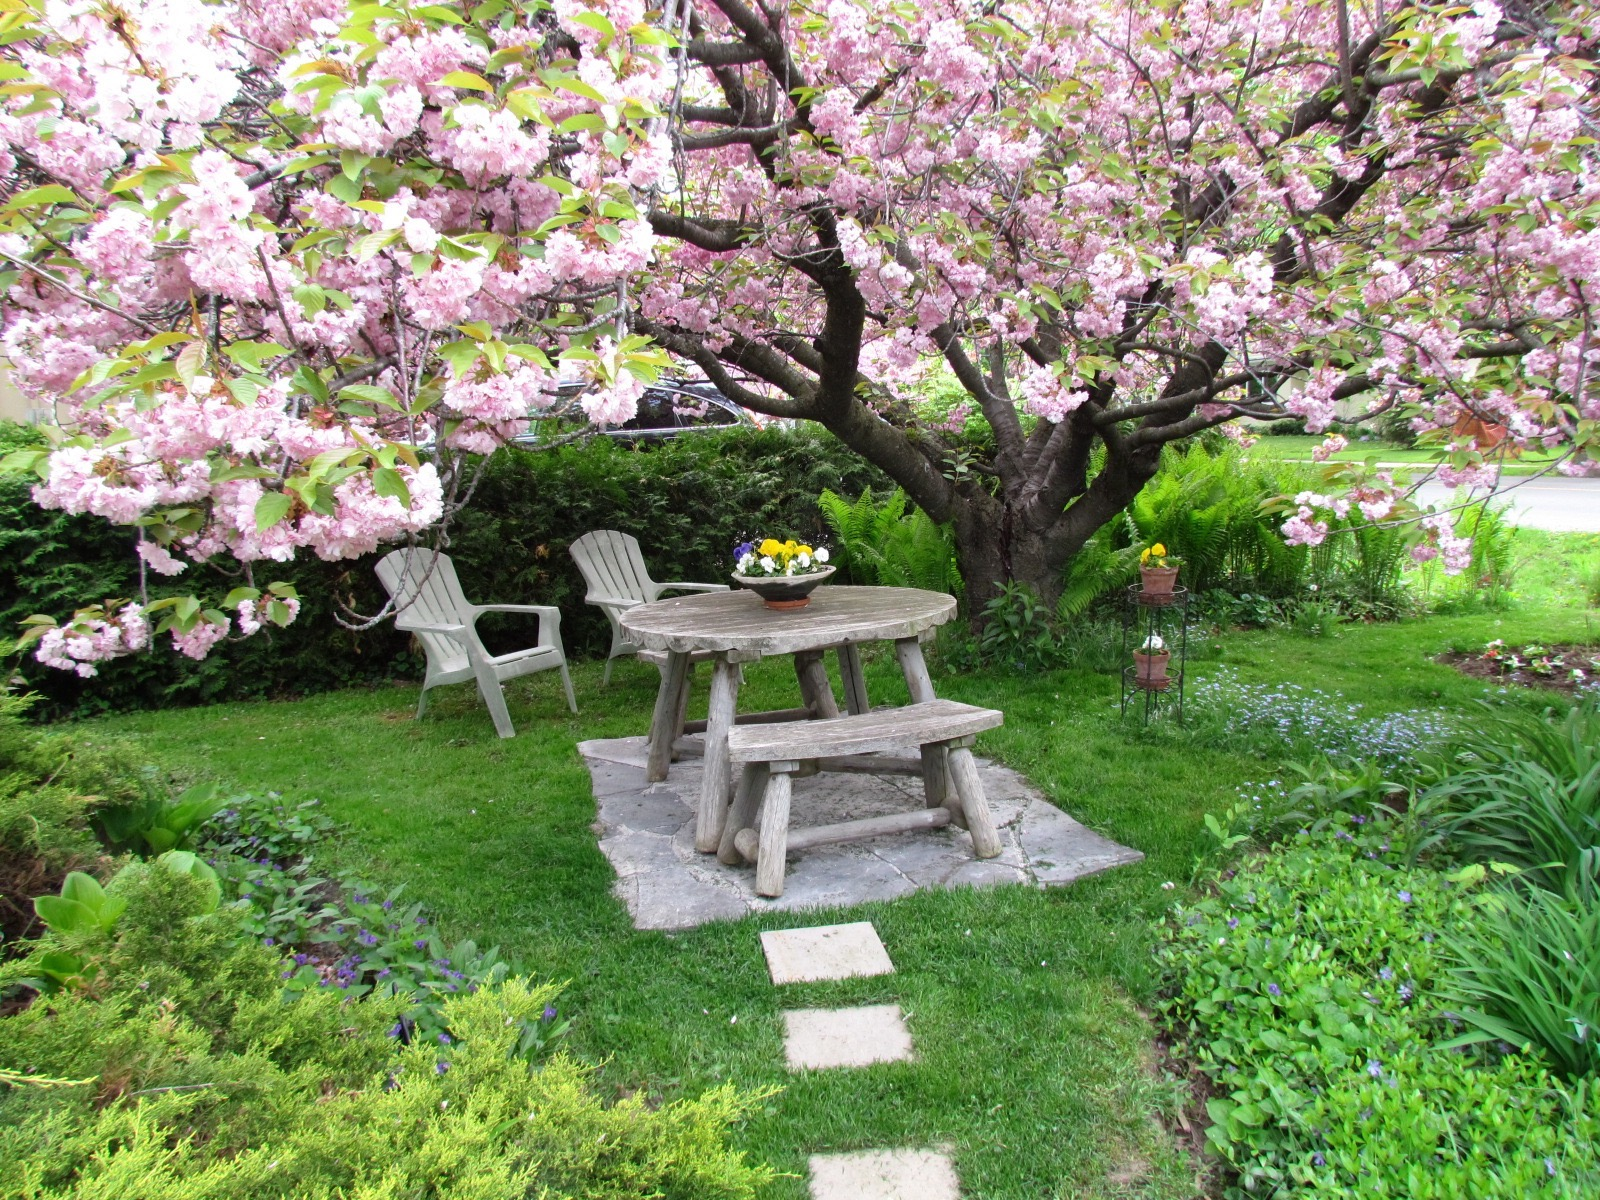 cherry blossoms picnic table peaceful bnb b&b bed breakfast